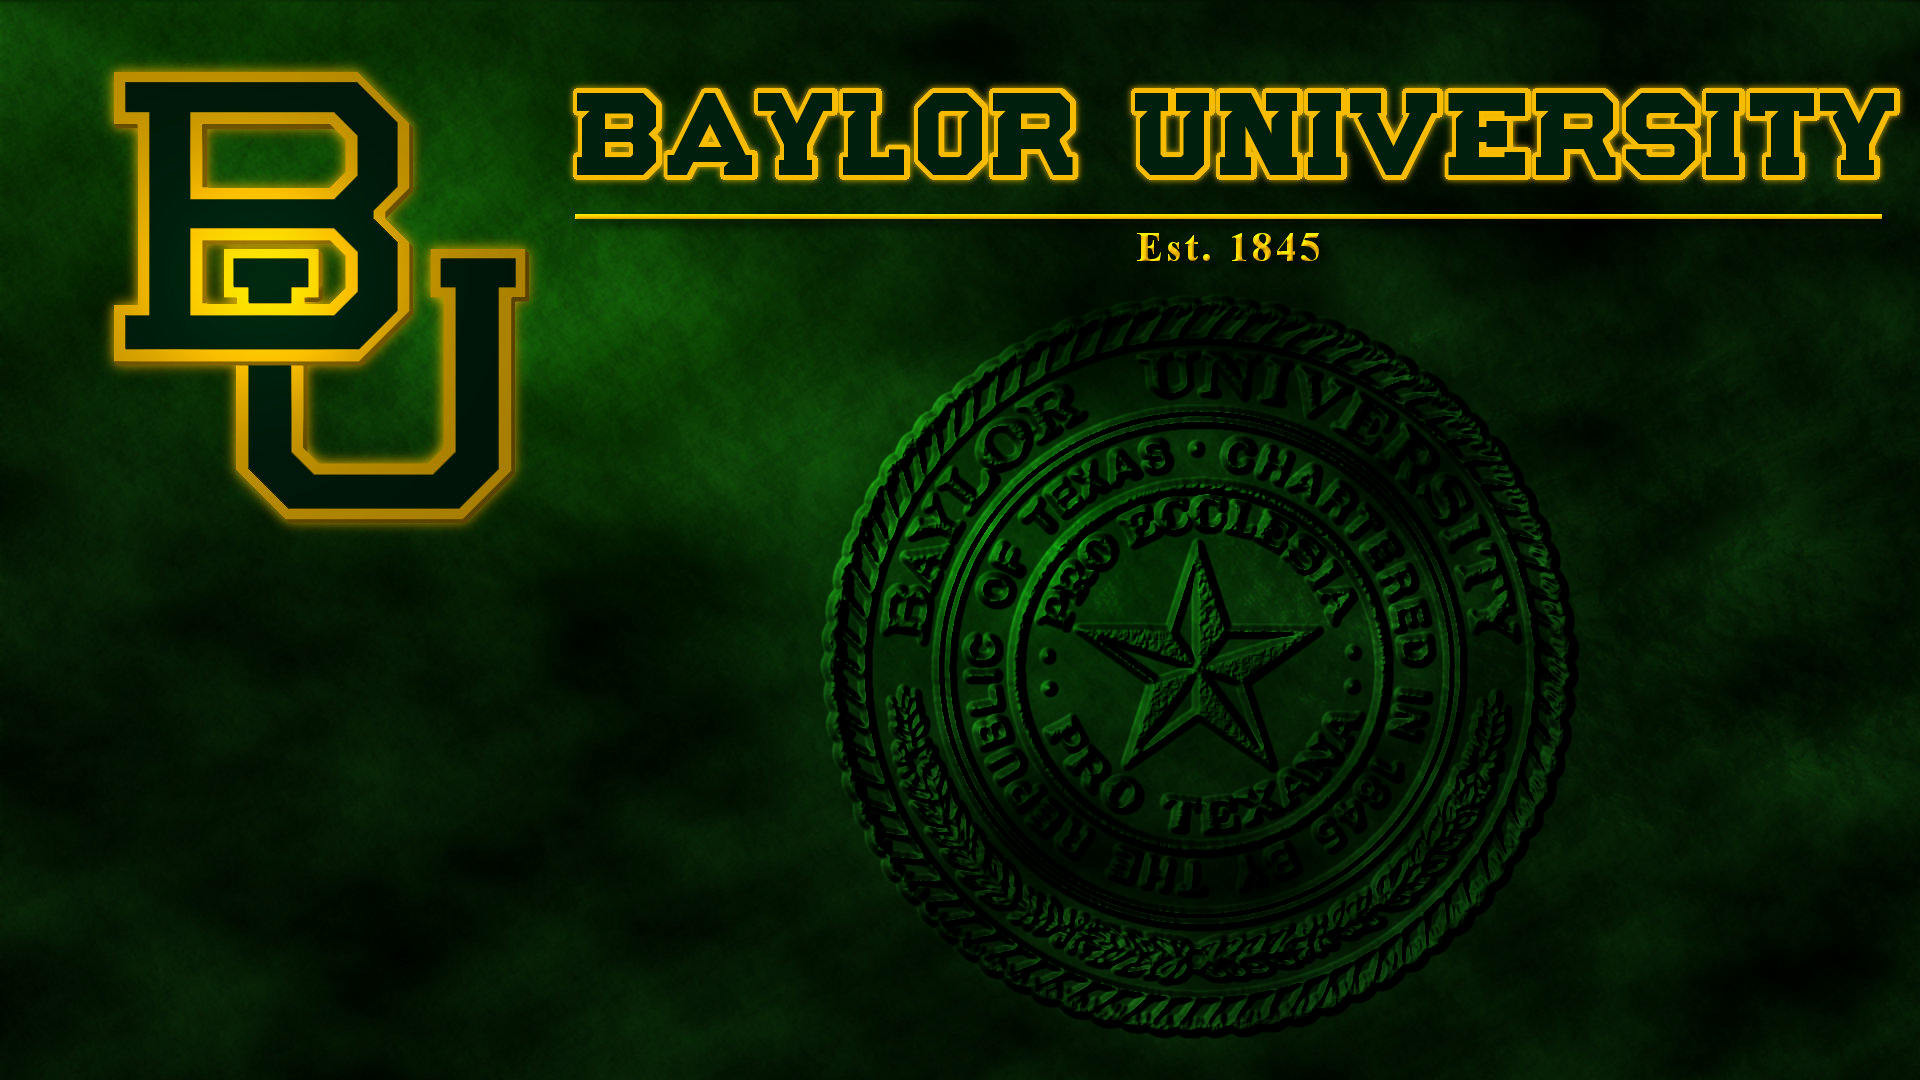 Baylor Wallpapers, Browser Themes & More for Bears Fans – Brand Thunder